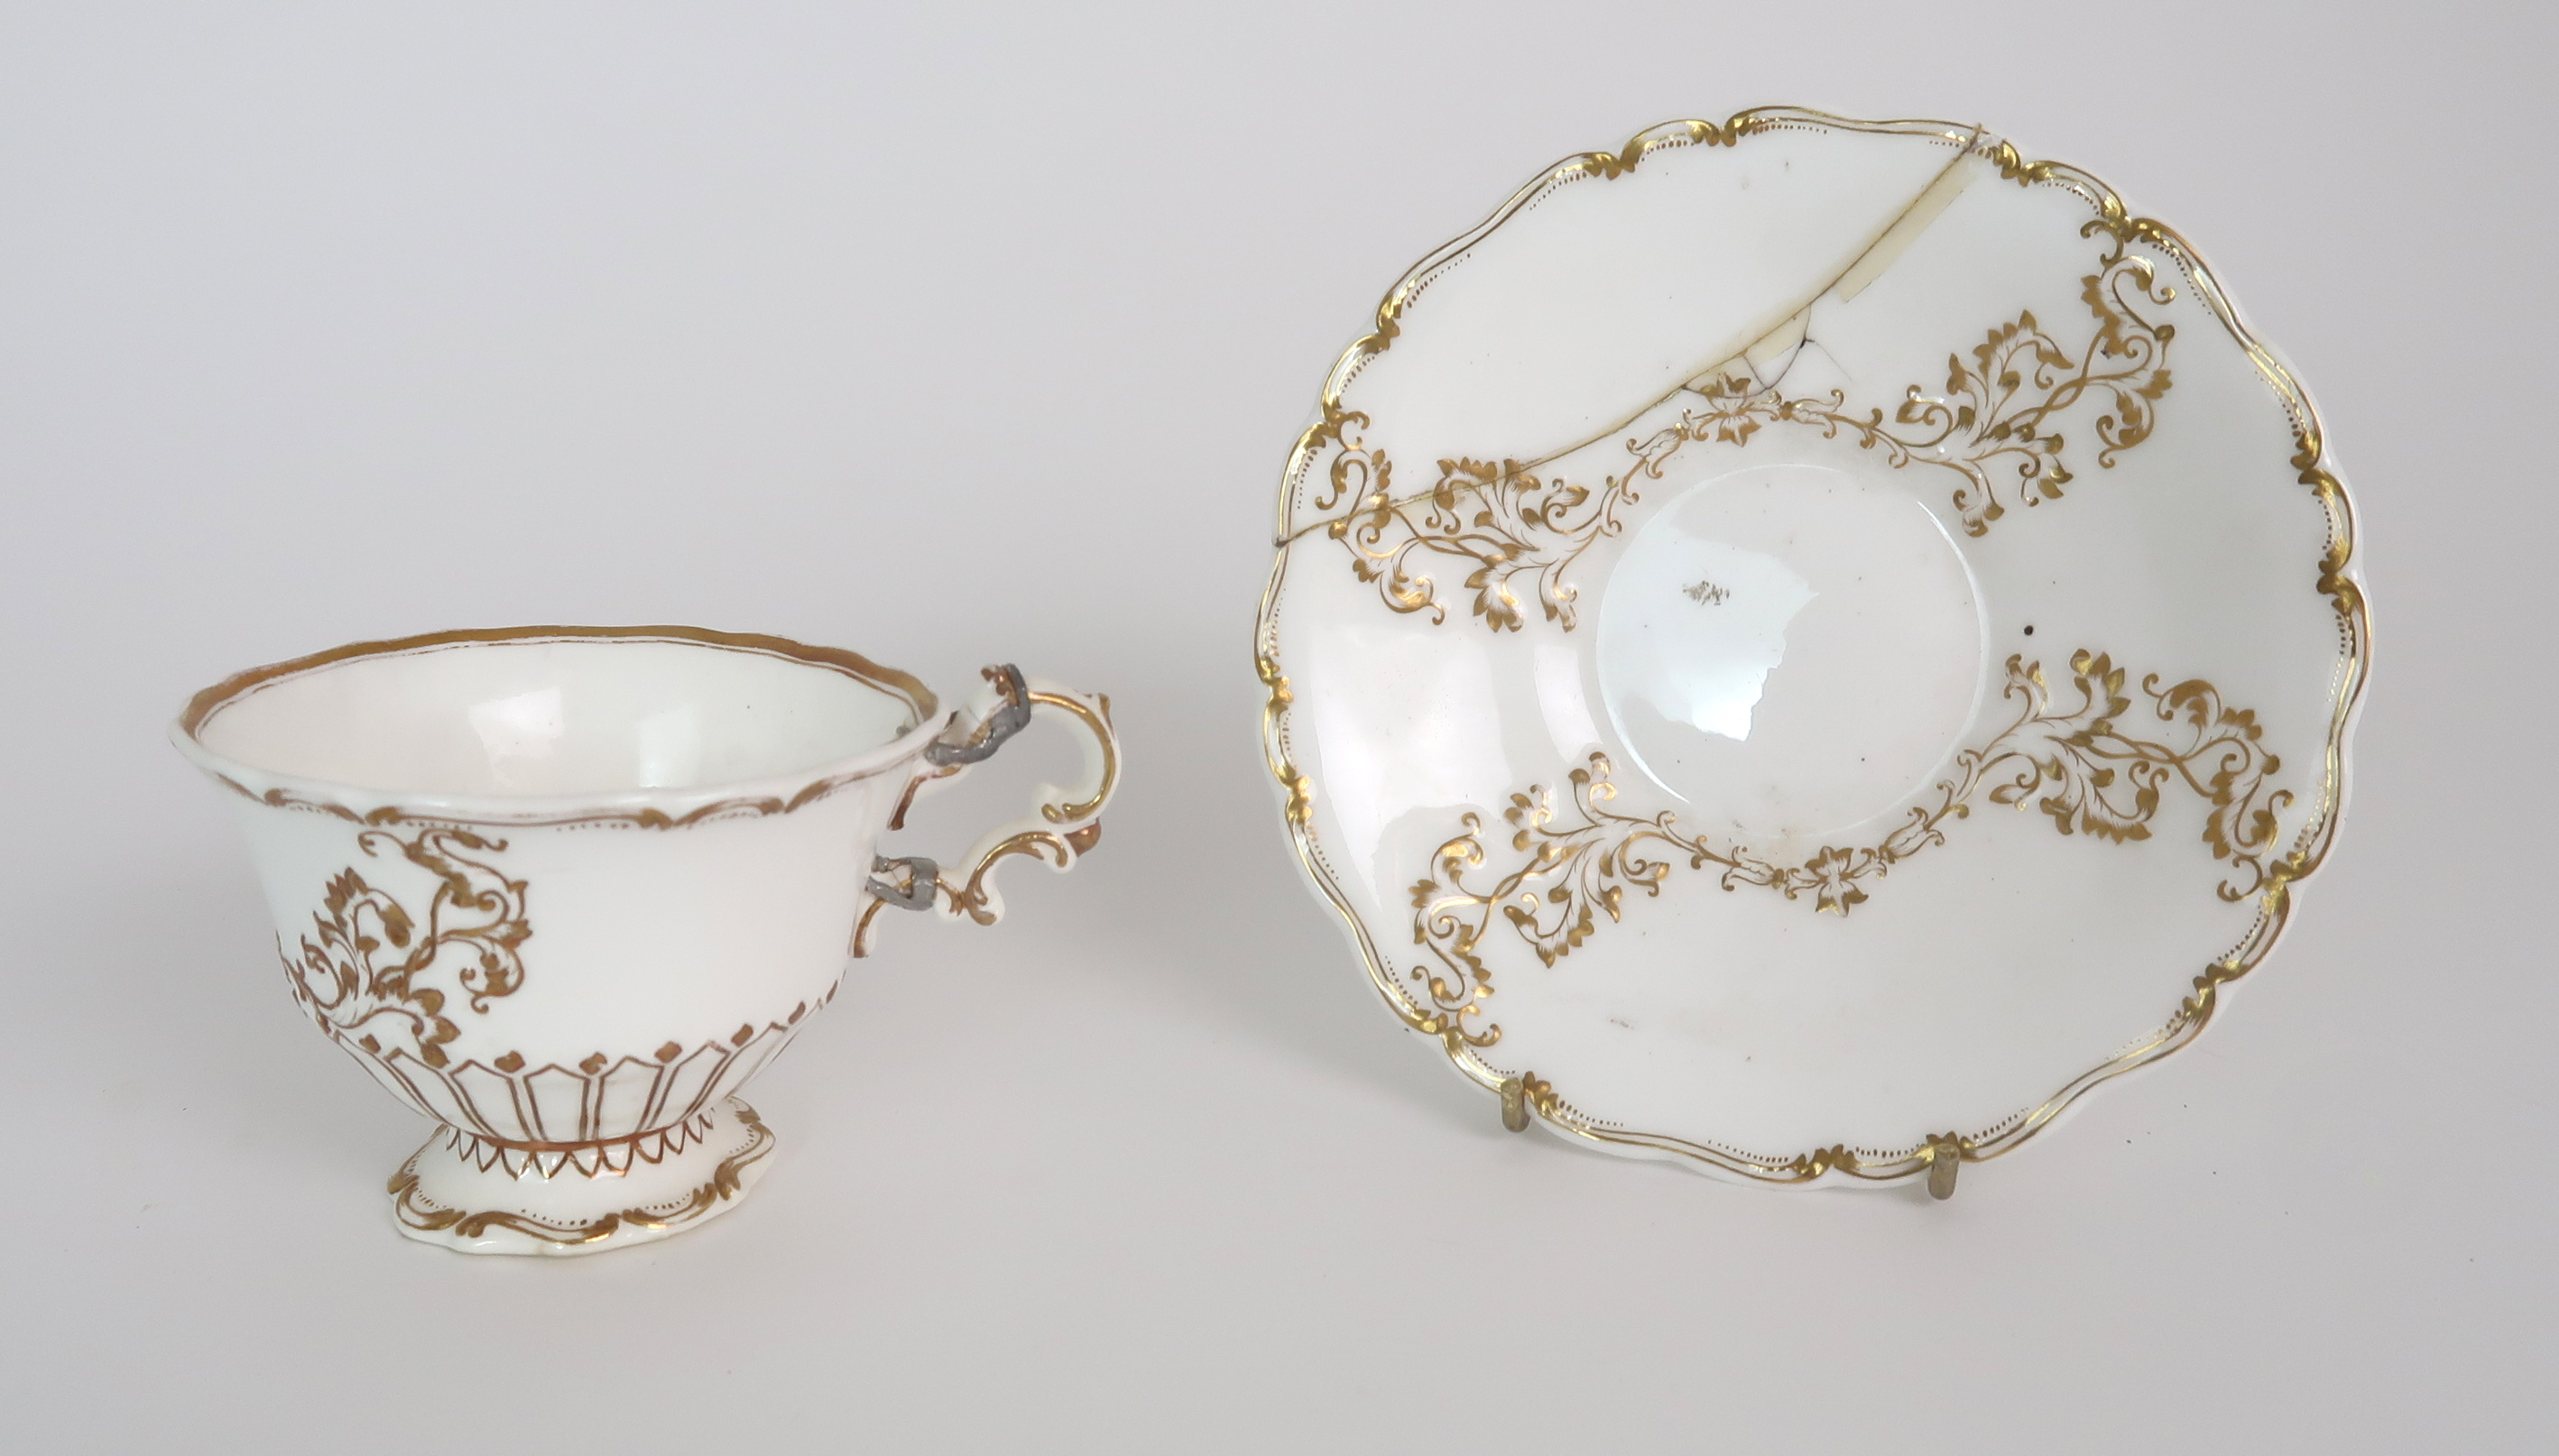 A COLLECTION OF 19TH CENTURY ENGLISH TEA AND COFFEE WARES the white ground with either grey and gilt - Image 6 of 22